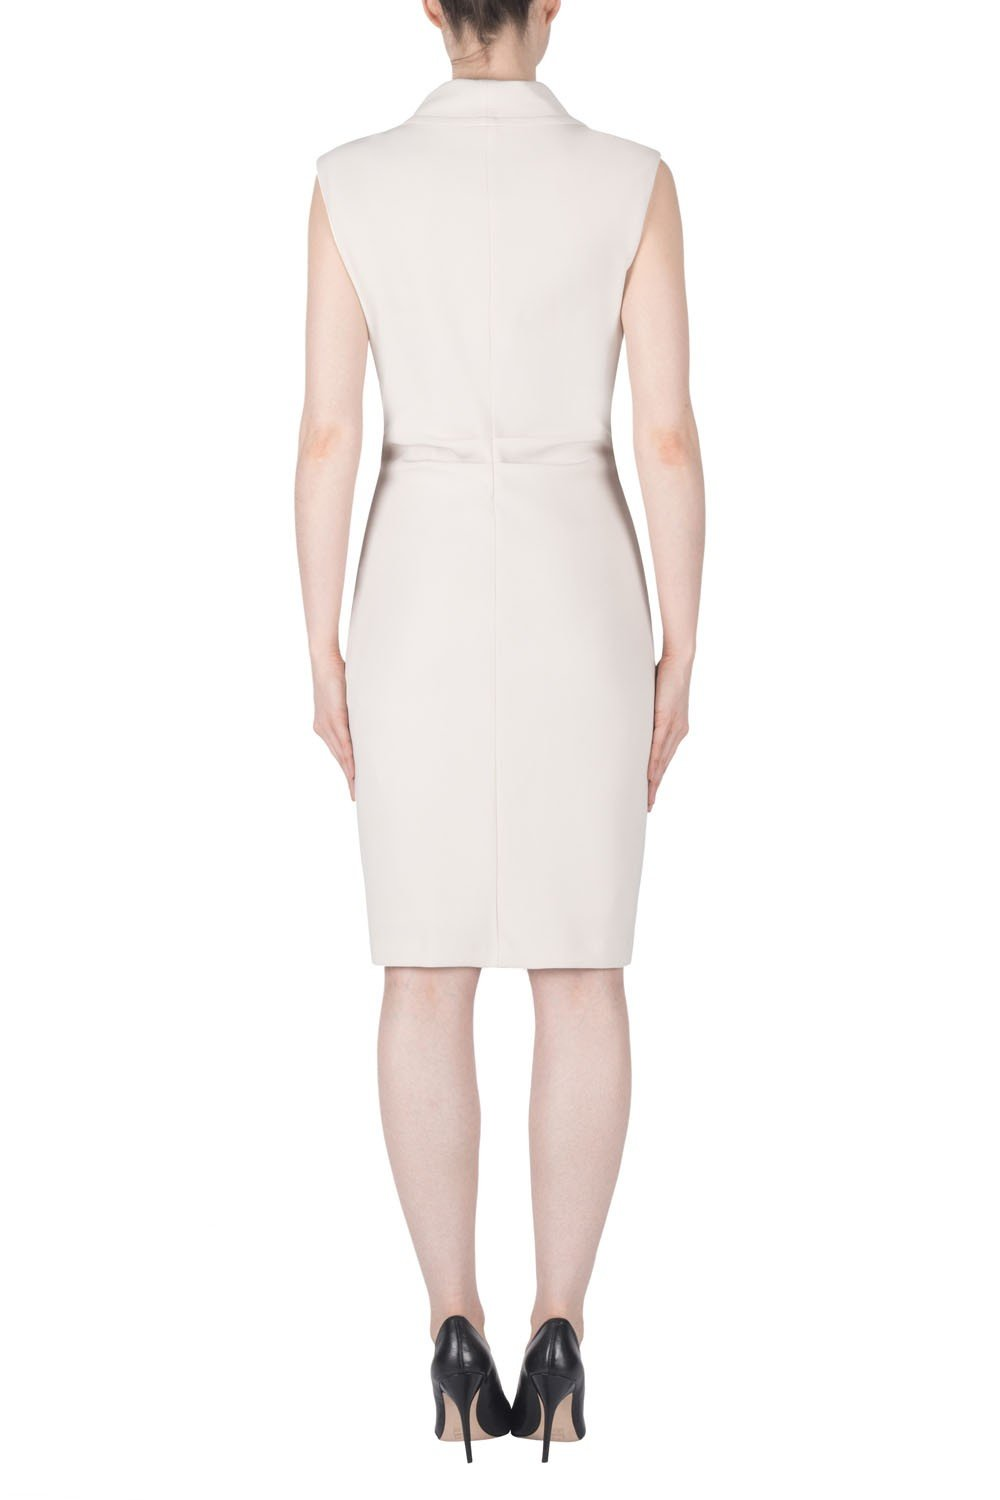 Image of Joseph Ribkoff Dress Style 183015x Best Price On Sale Freeds